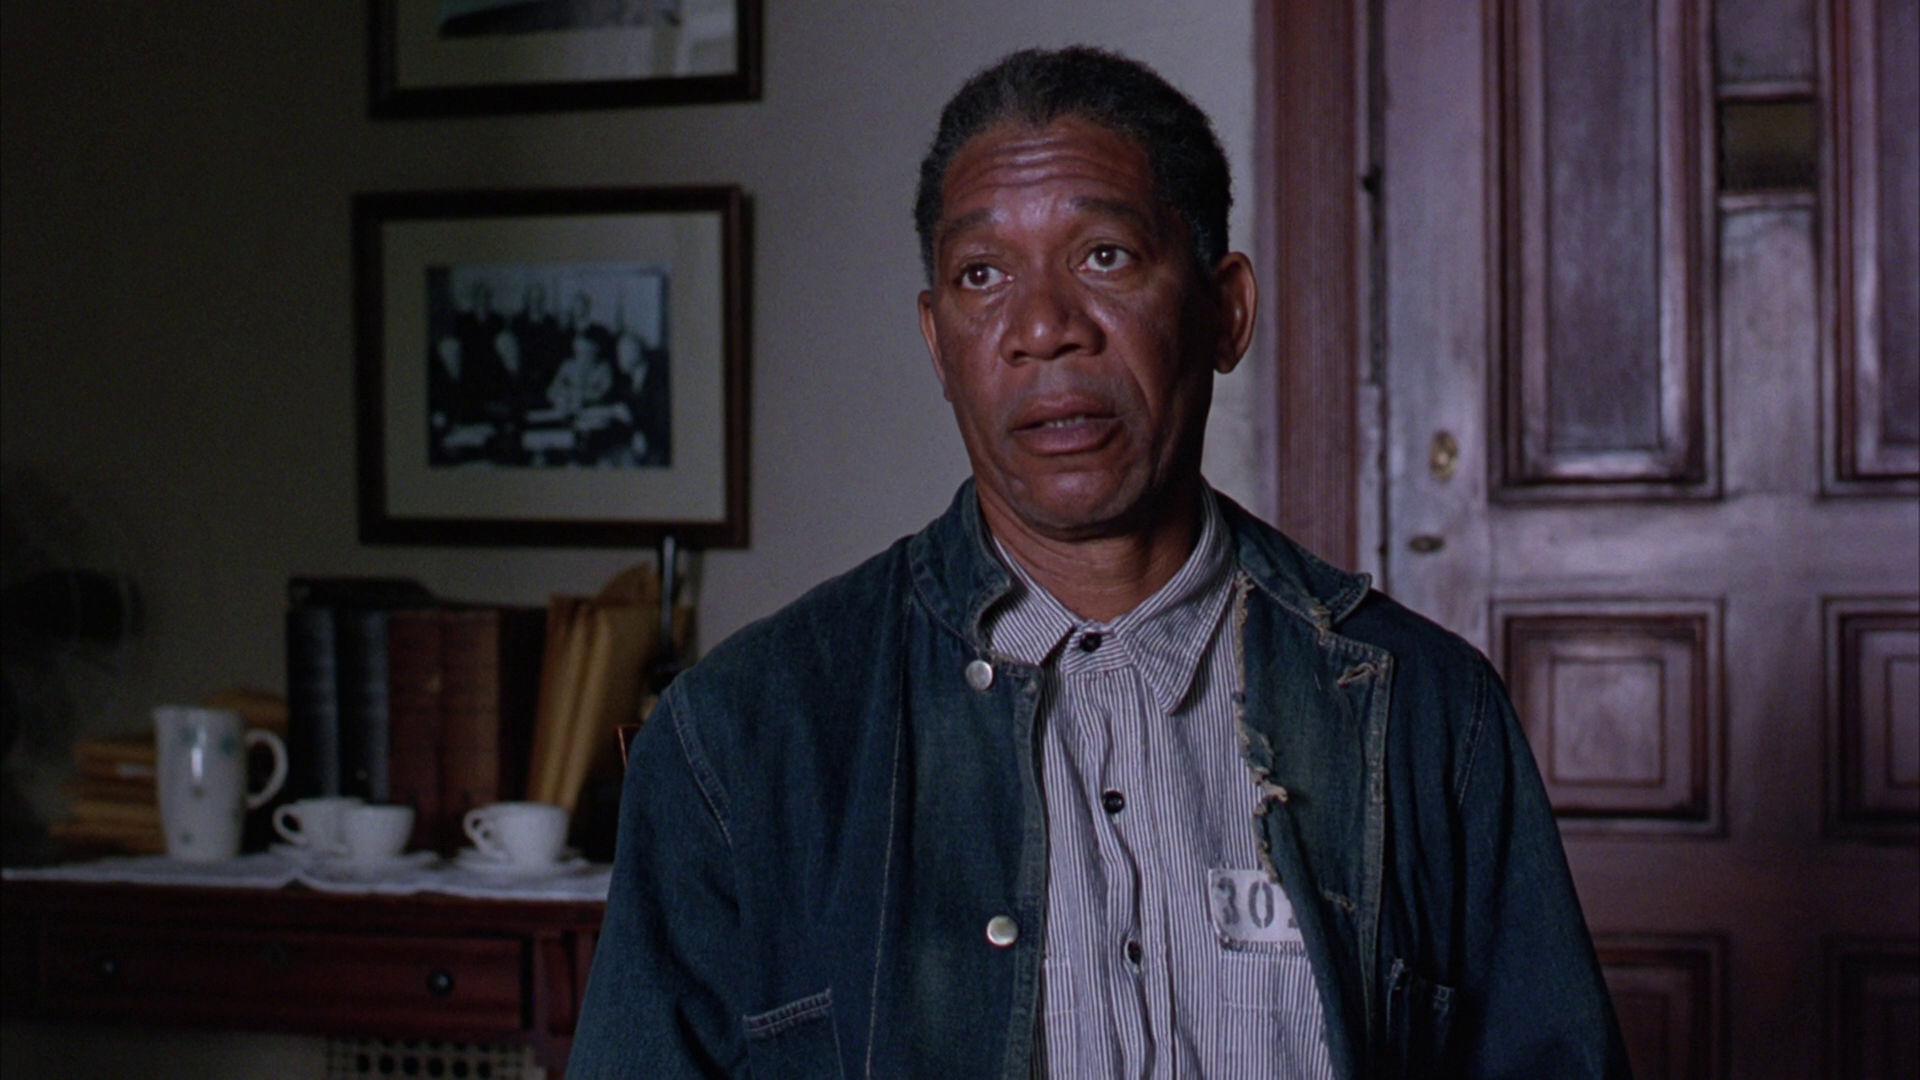 shawshank redemption psychological review The shawshank redemption is based on one of king's short stories,  in an  interesting position when it comes to writing a critical analysis of it,.